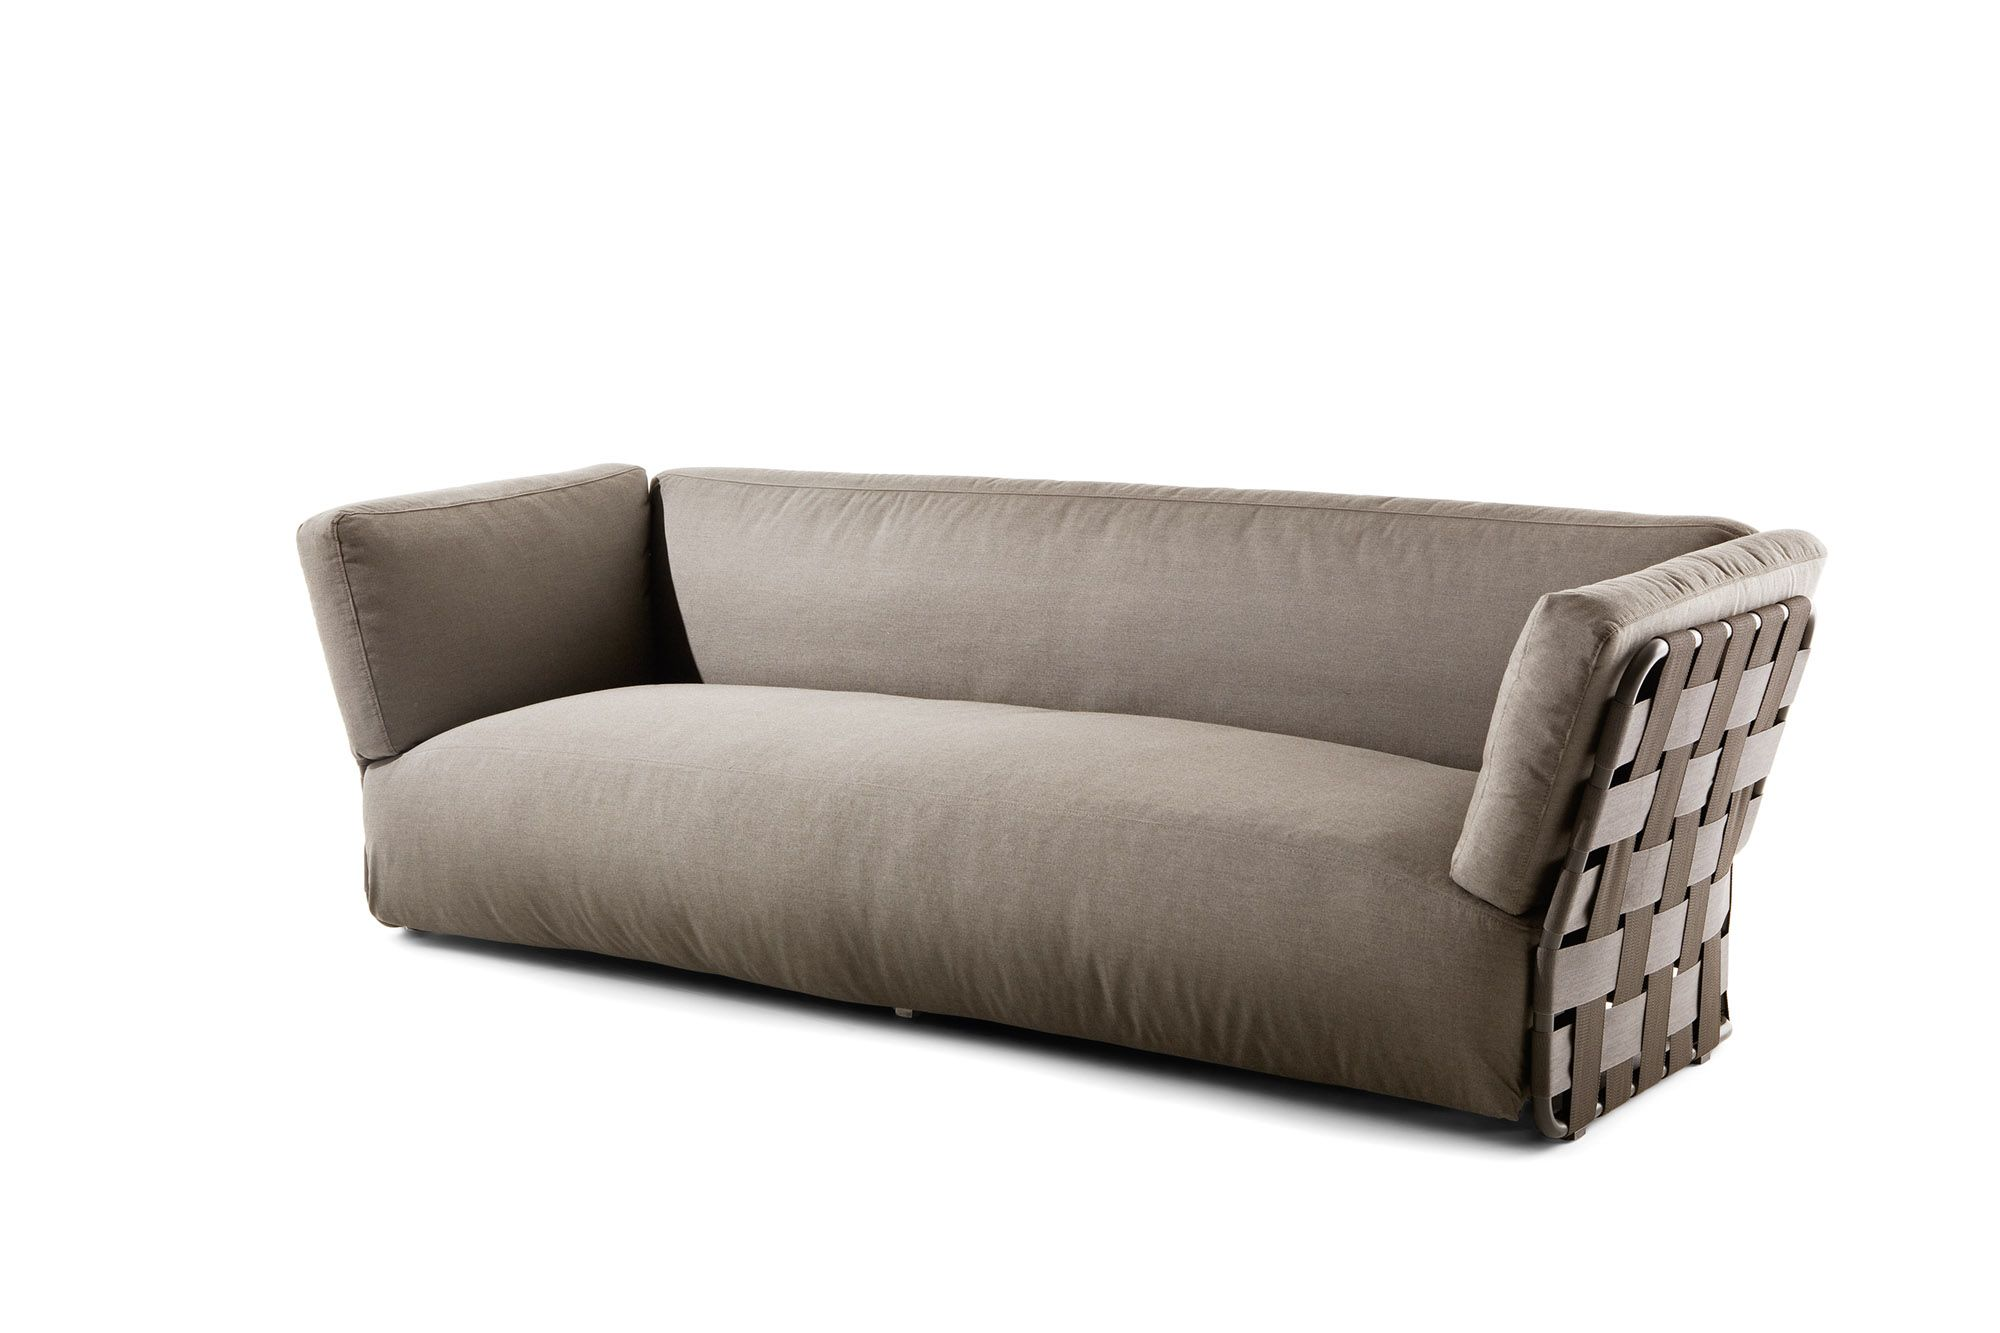 Obi Tavoli Da Esterno.Salotti Da Esterno Obi Sofa Design Patio Furniture Pillows